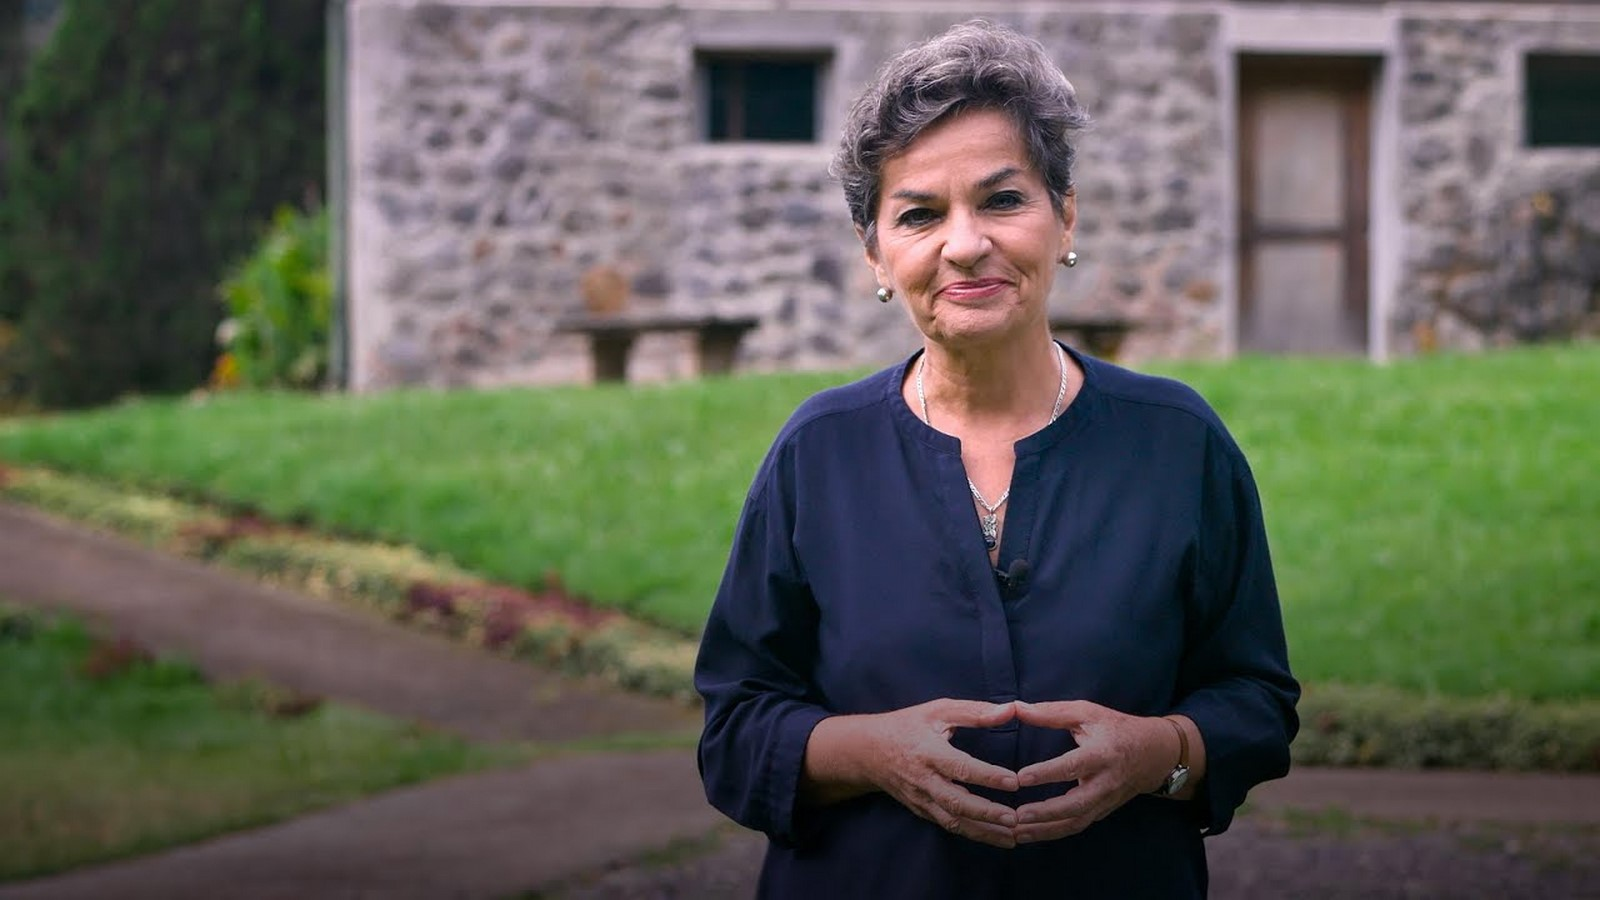 A Net-Zero Future Is Now Under Construction comments Christiana Figueres